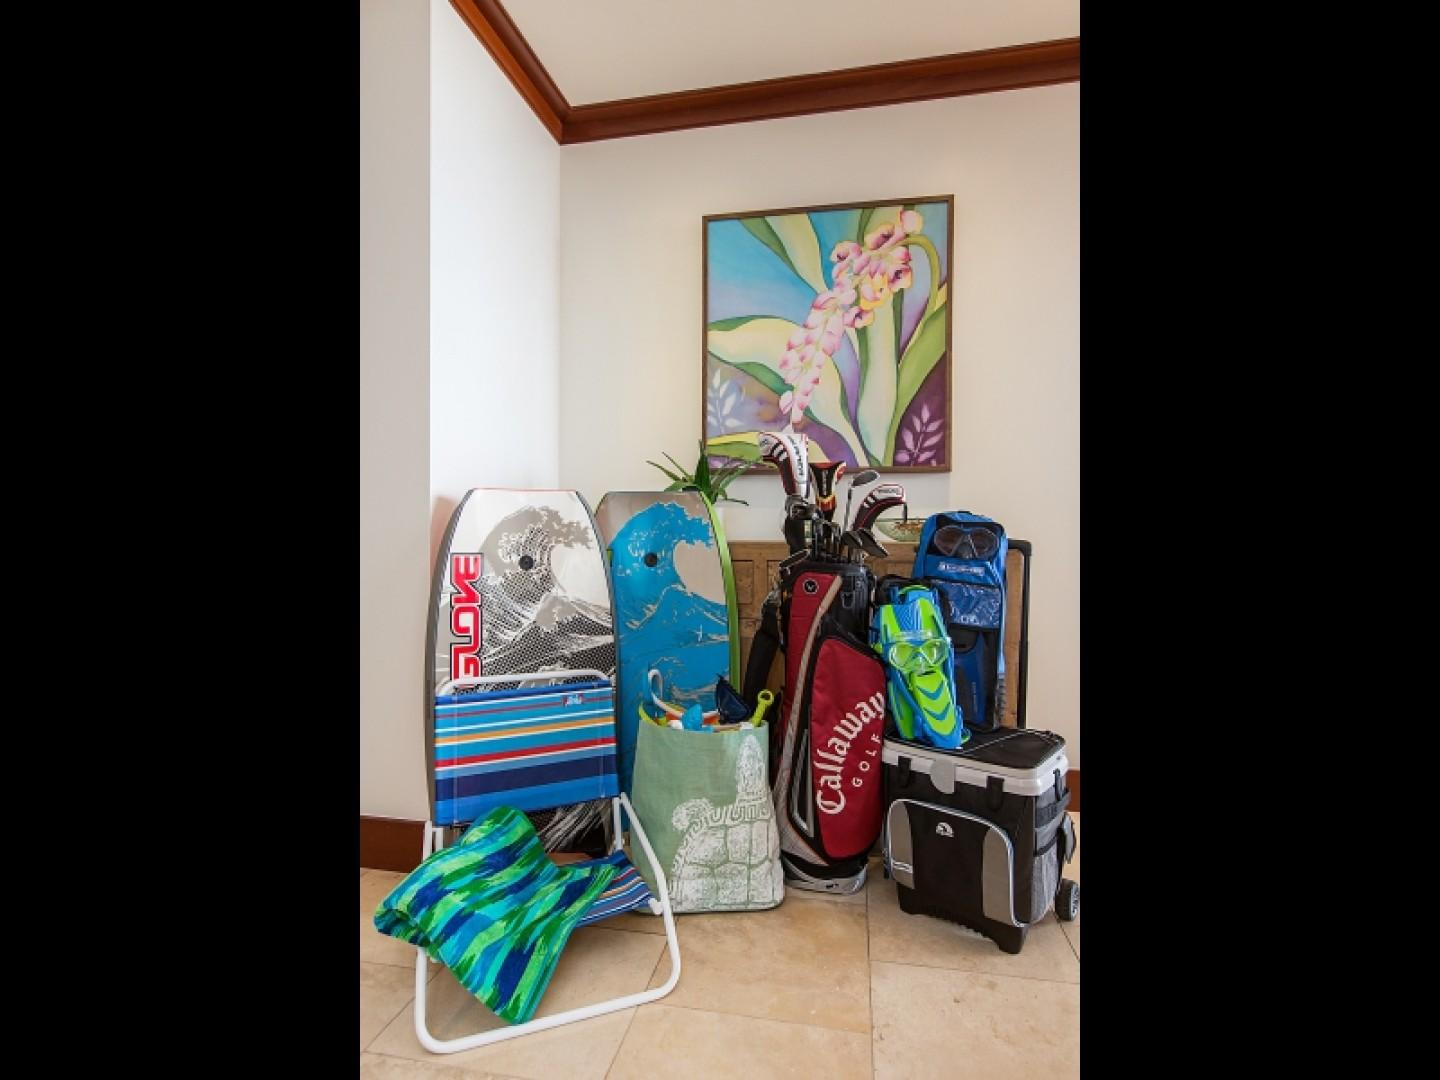 Amenities included boogie boards, beach chairs and towels, cooler, snorkel gear and golf clubs.